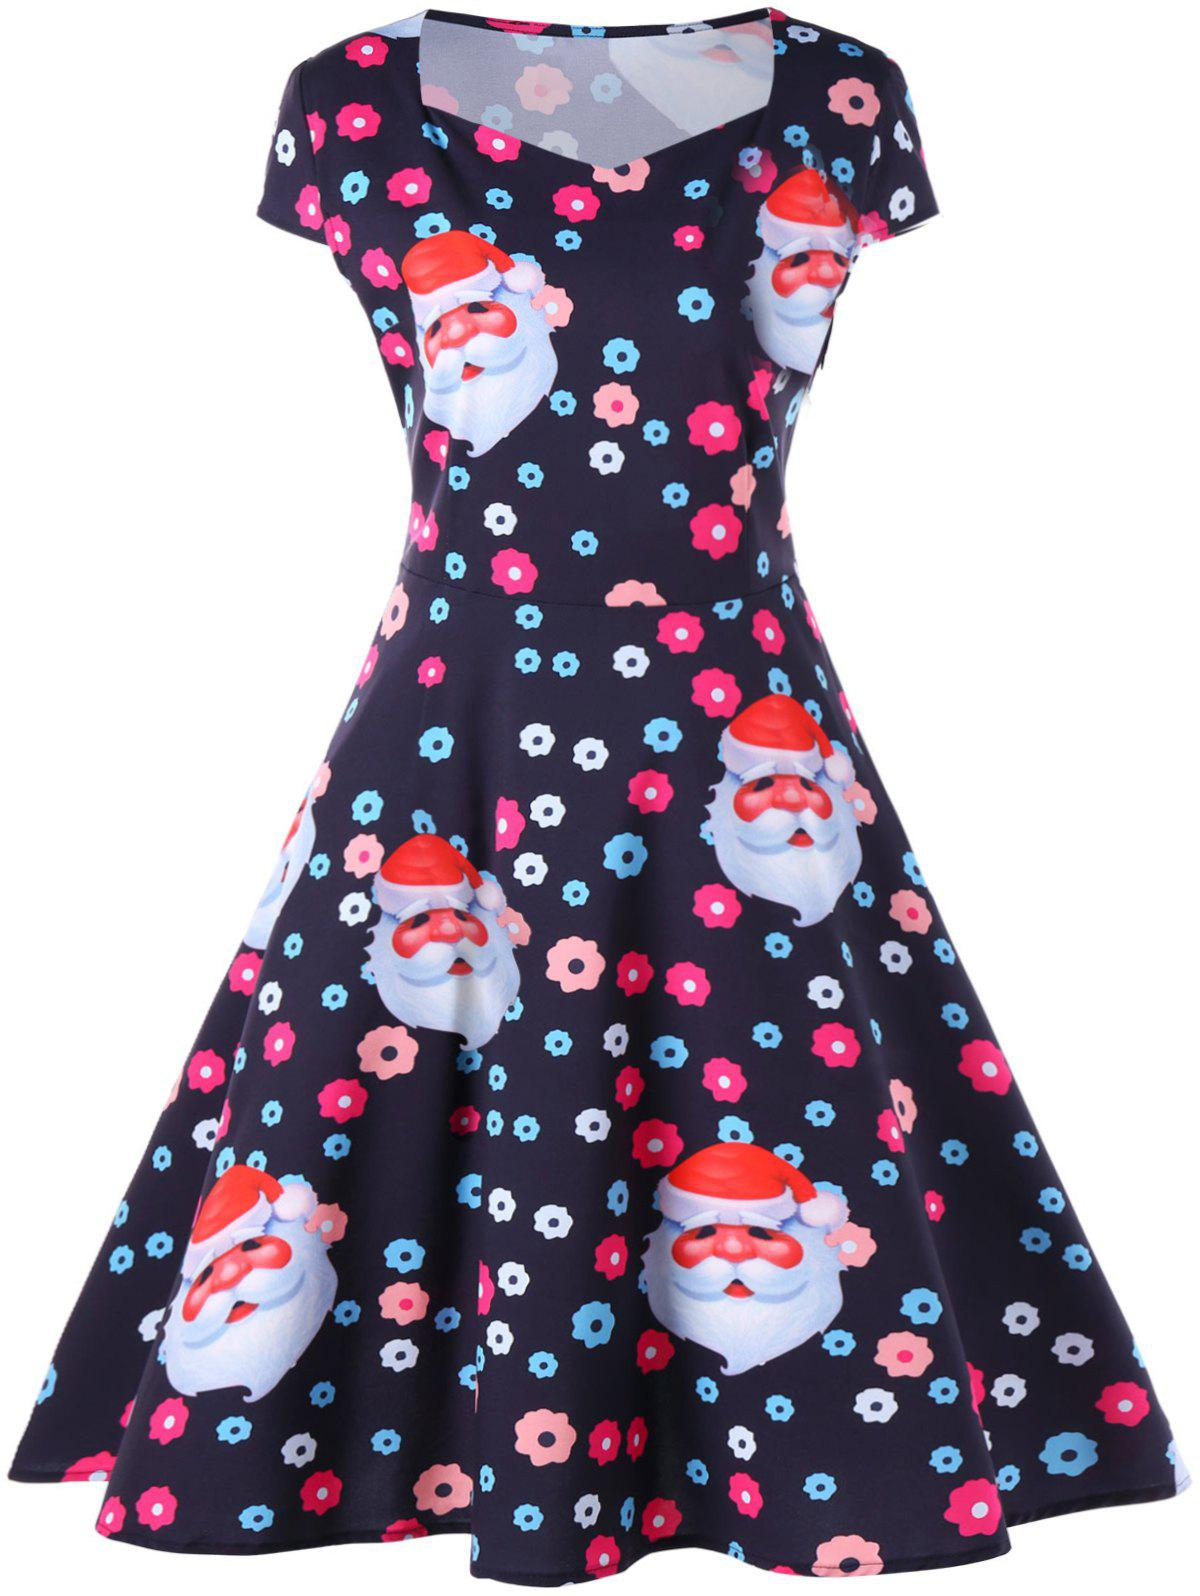 Christmas Floral and Santa Print Flare DressWOMEN<br><br>Size: S; Color: BLACK; Style: Vintage; Material: Polyester; Silhouette: A-Line; Dresses Length: Mid-Calf; Neckline: Sweetheart Neck; Sleeve Type: Cap Sleeve; Sleeve Length: Short Sleeves; Pattern Type: Character,Floral; With Belt: No; Season: Fall,Spring,Summer; Weight: 0.2470kg; Package Contents: 1 x Dress;